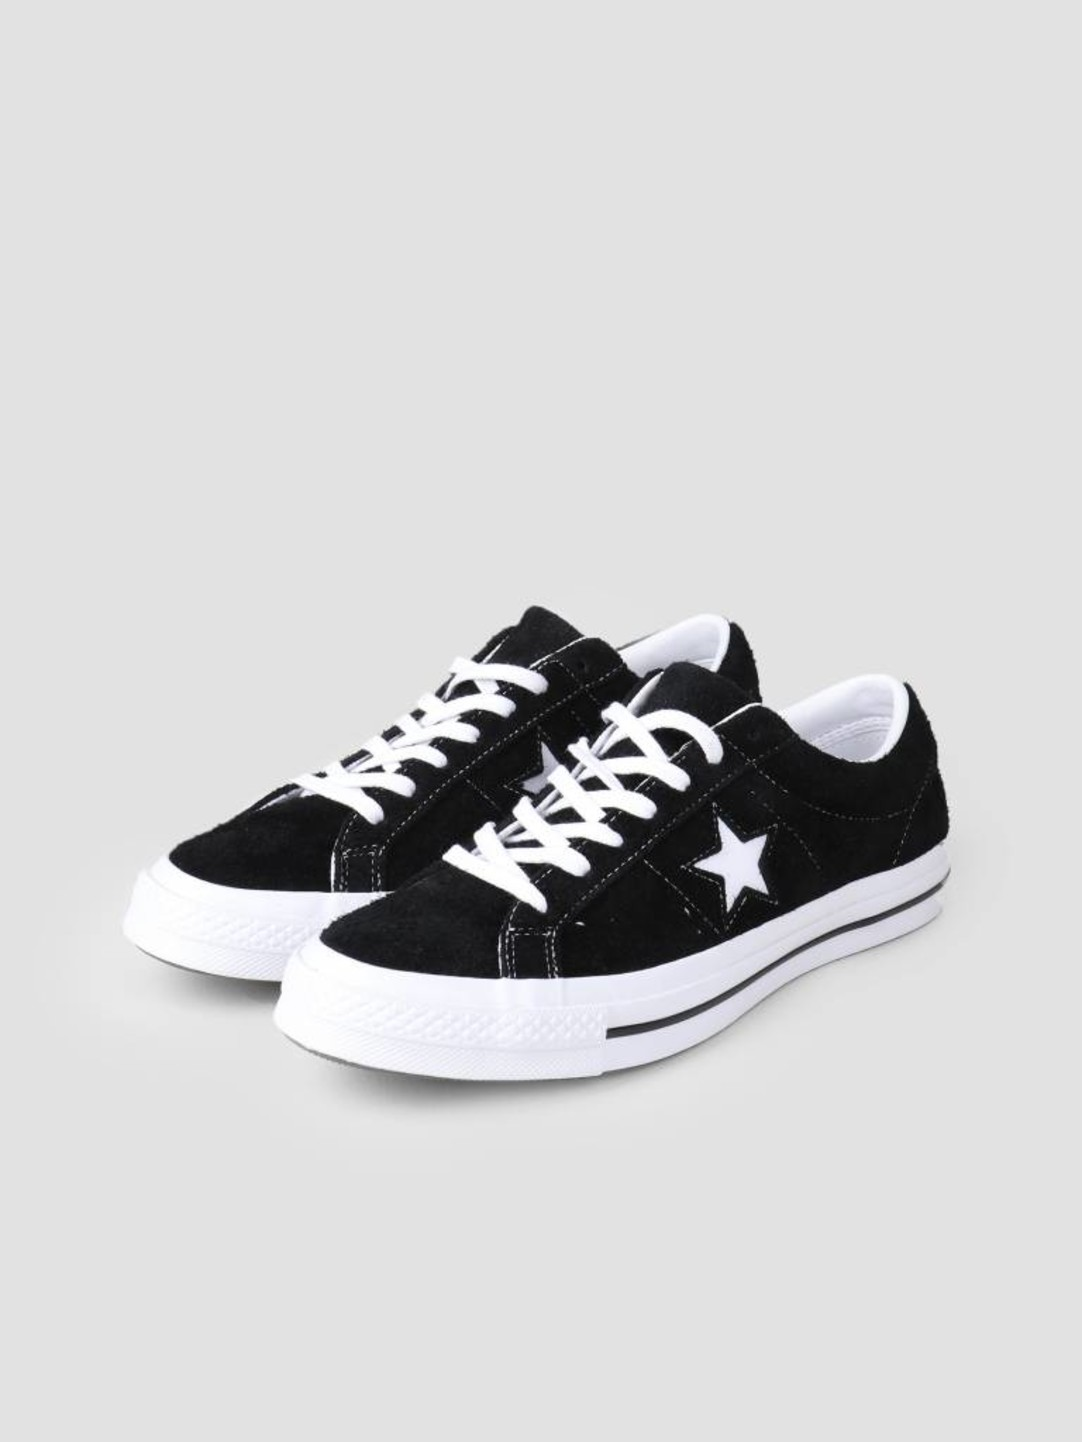 Converse Converse One Star OX Black White White 158369C